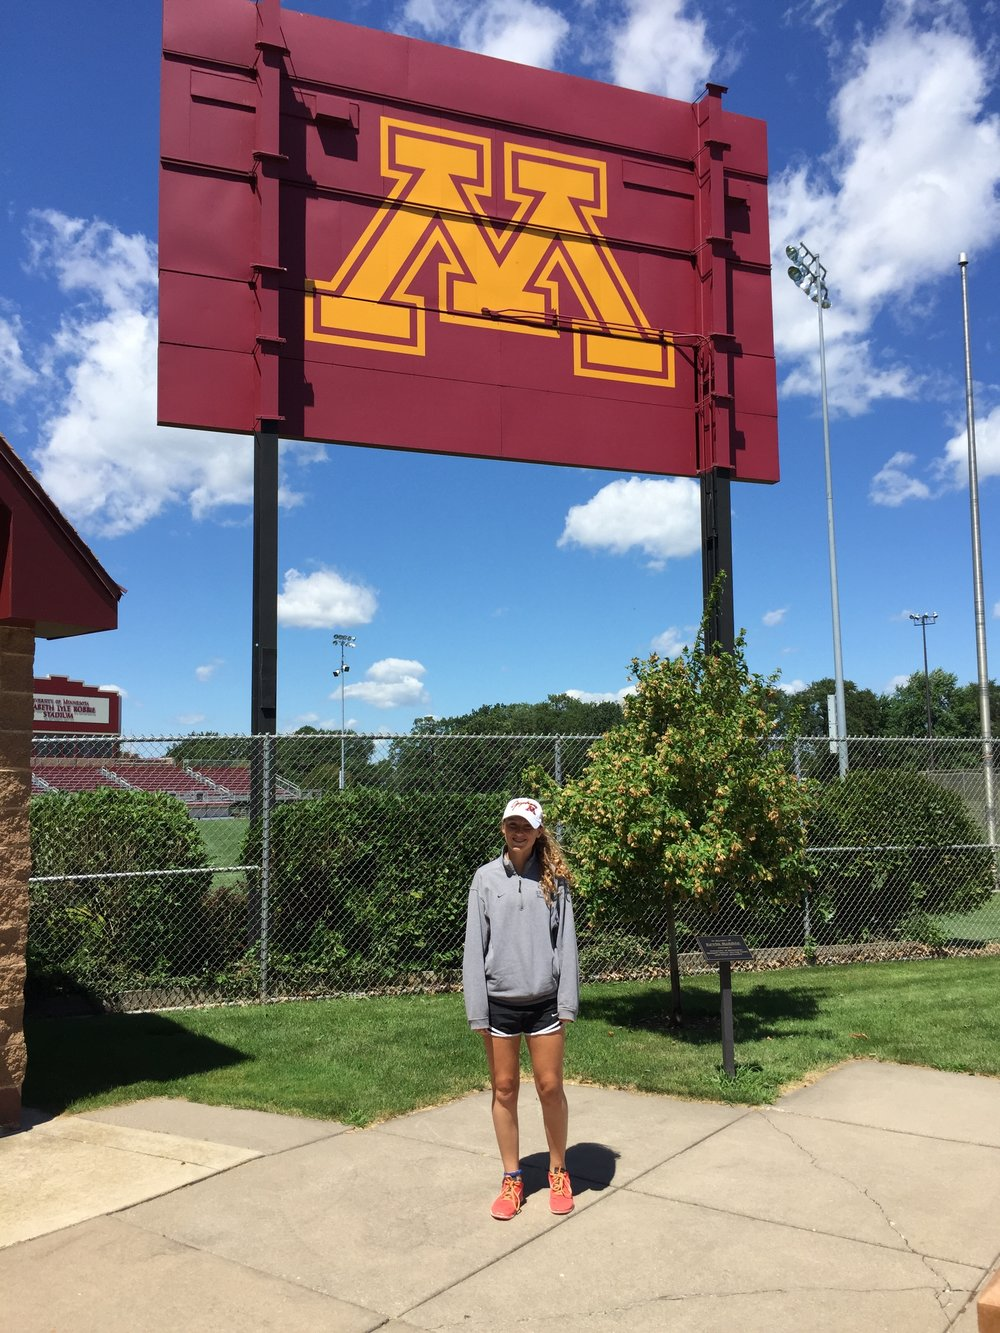 La Mond stands in front of the soccer field at the University of Minnesota.